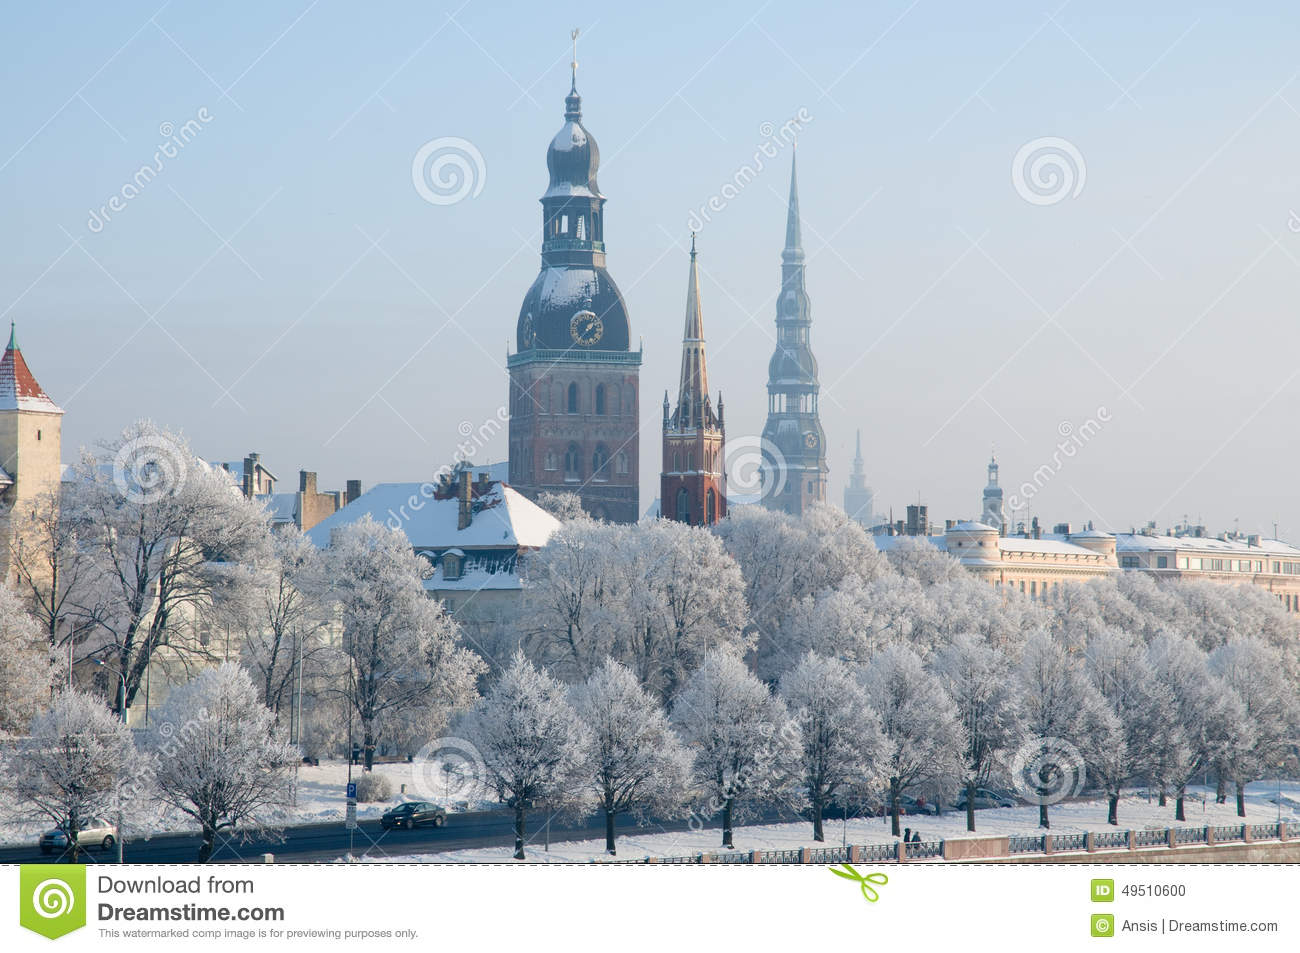 Winter In Riga, Latvia. Stock Photo - Image: 49510600